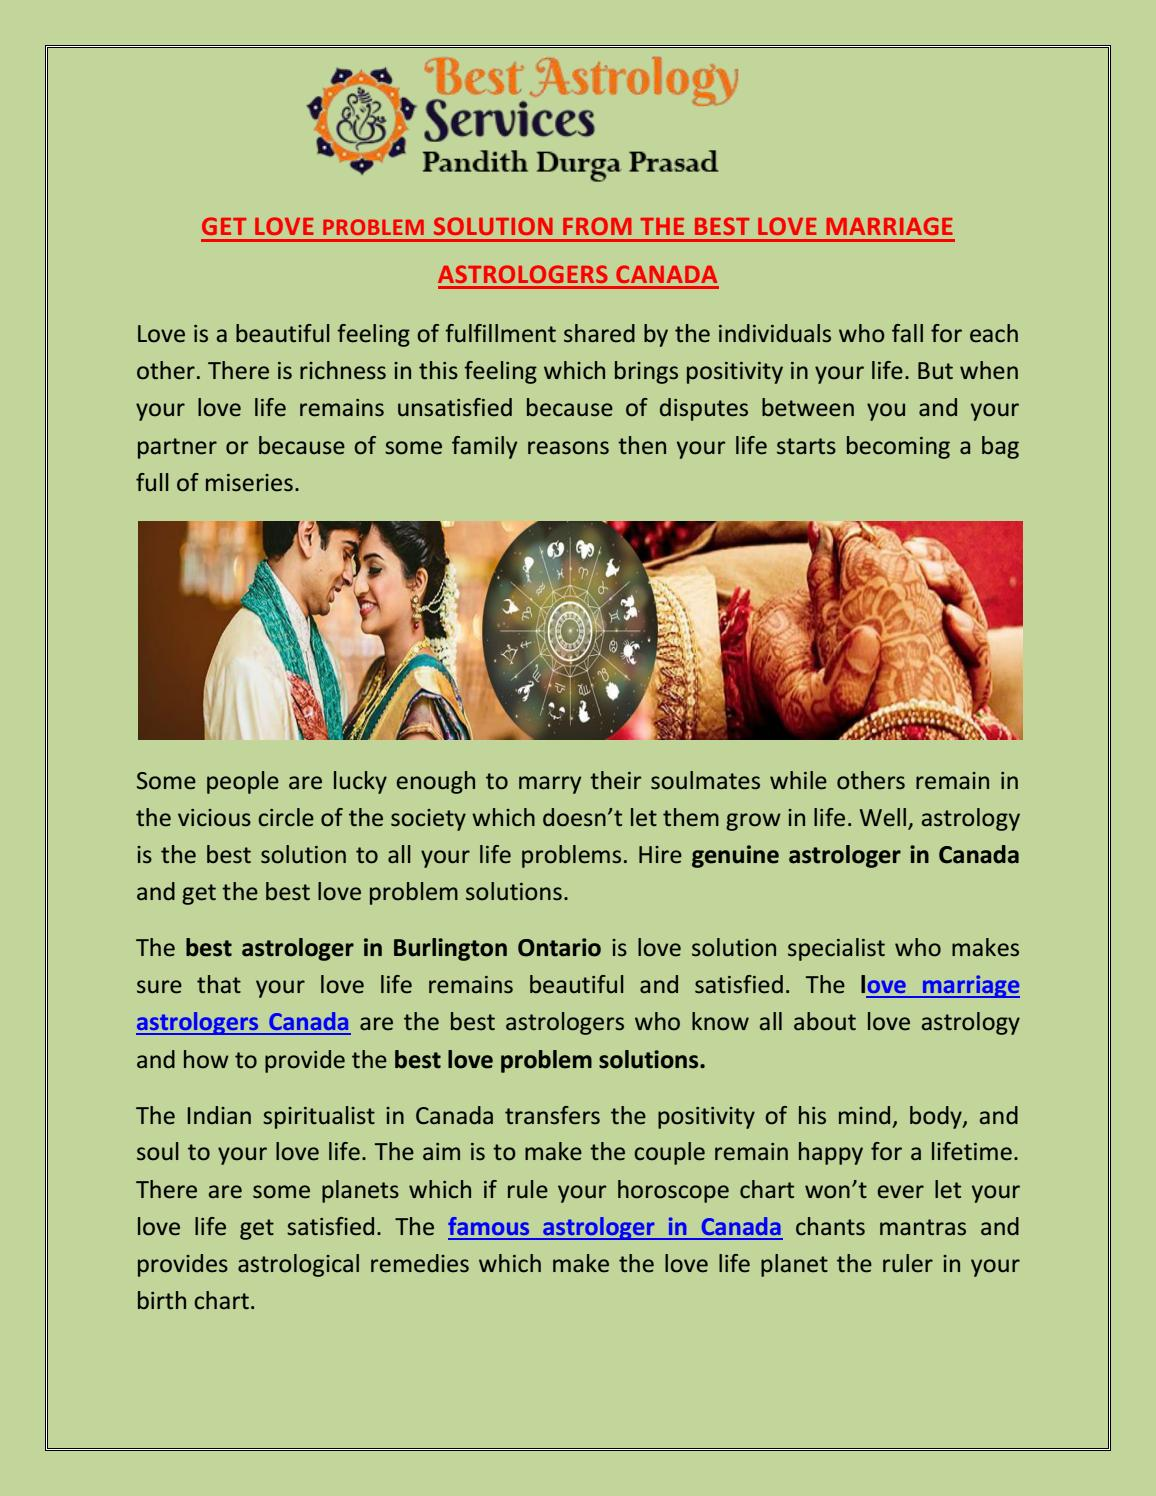 Get love problem solution from the best love marriage astrologers ...